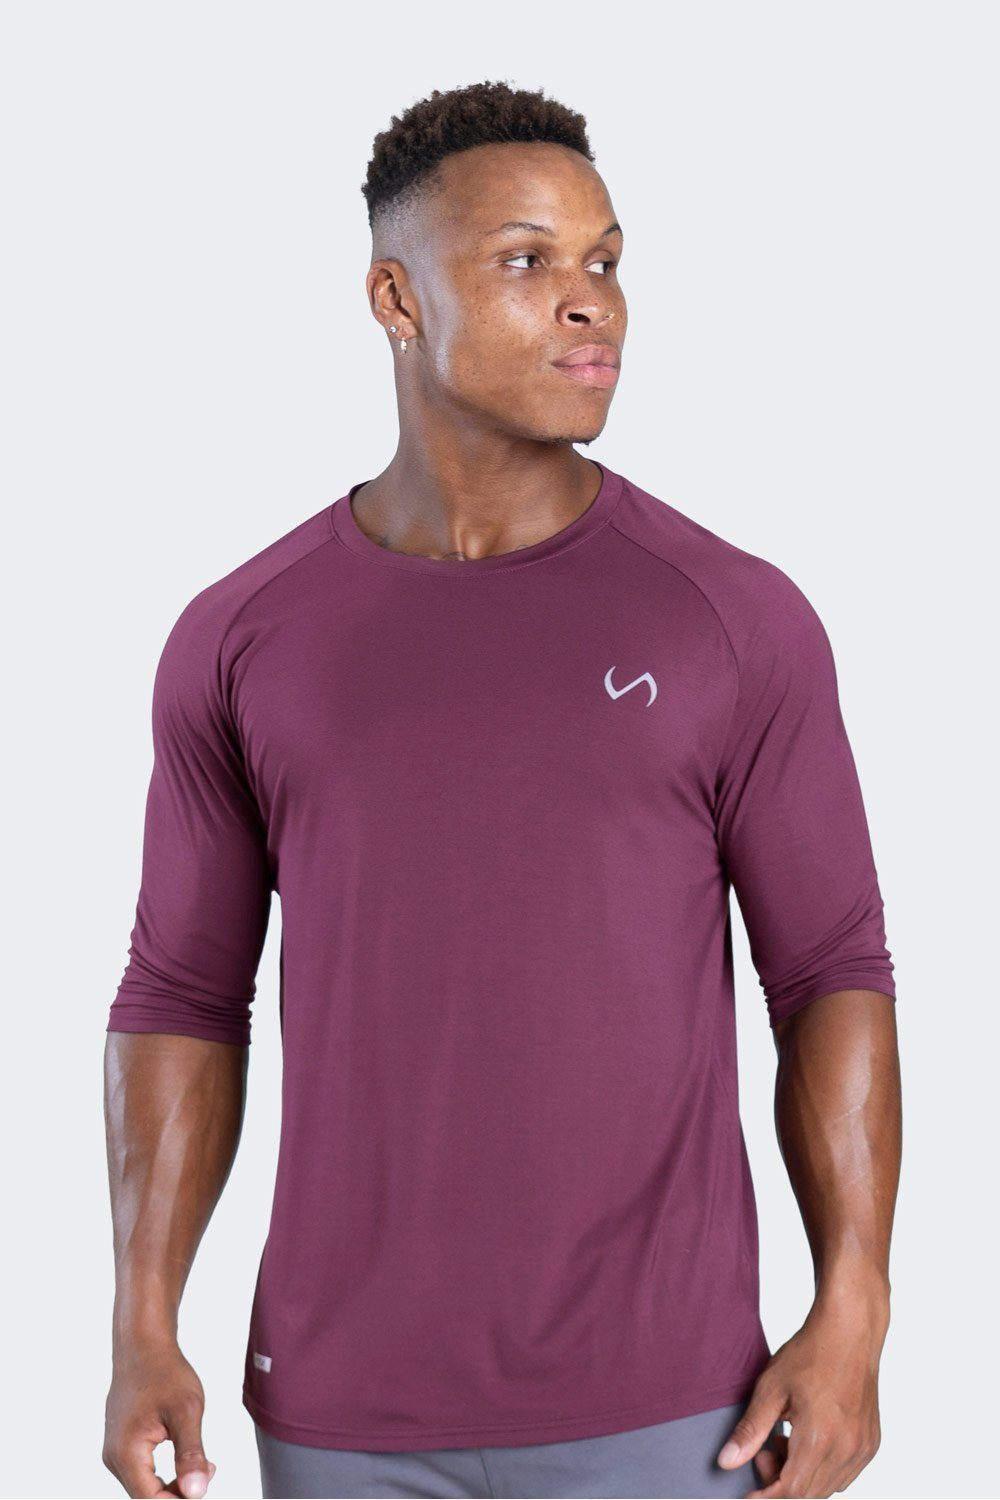 TLF Cirus Short Sleeve Shirt - Short Sleeves - TLF Apparel | Take Life Further